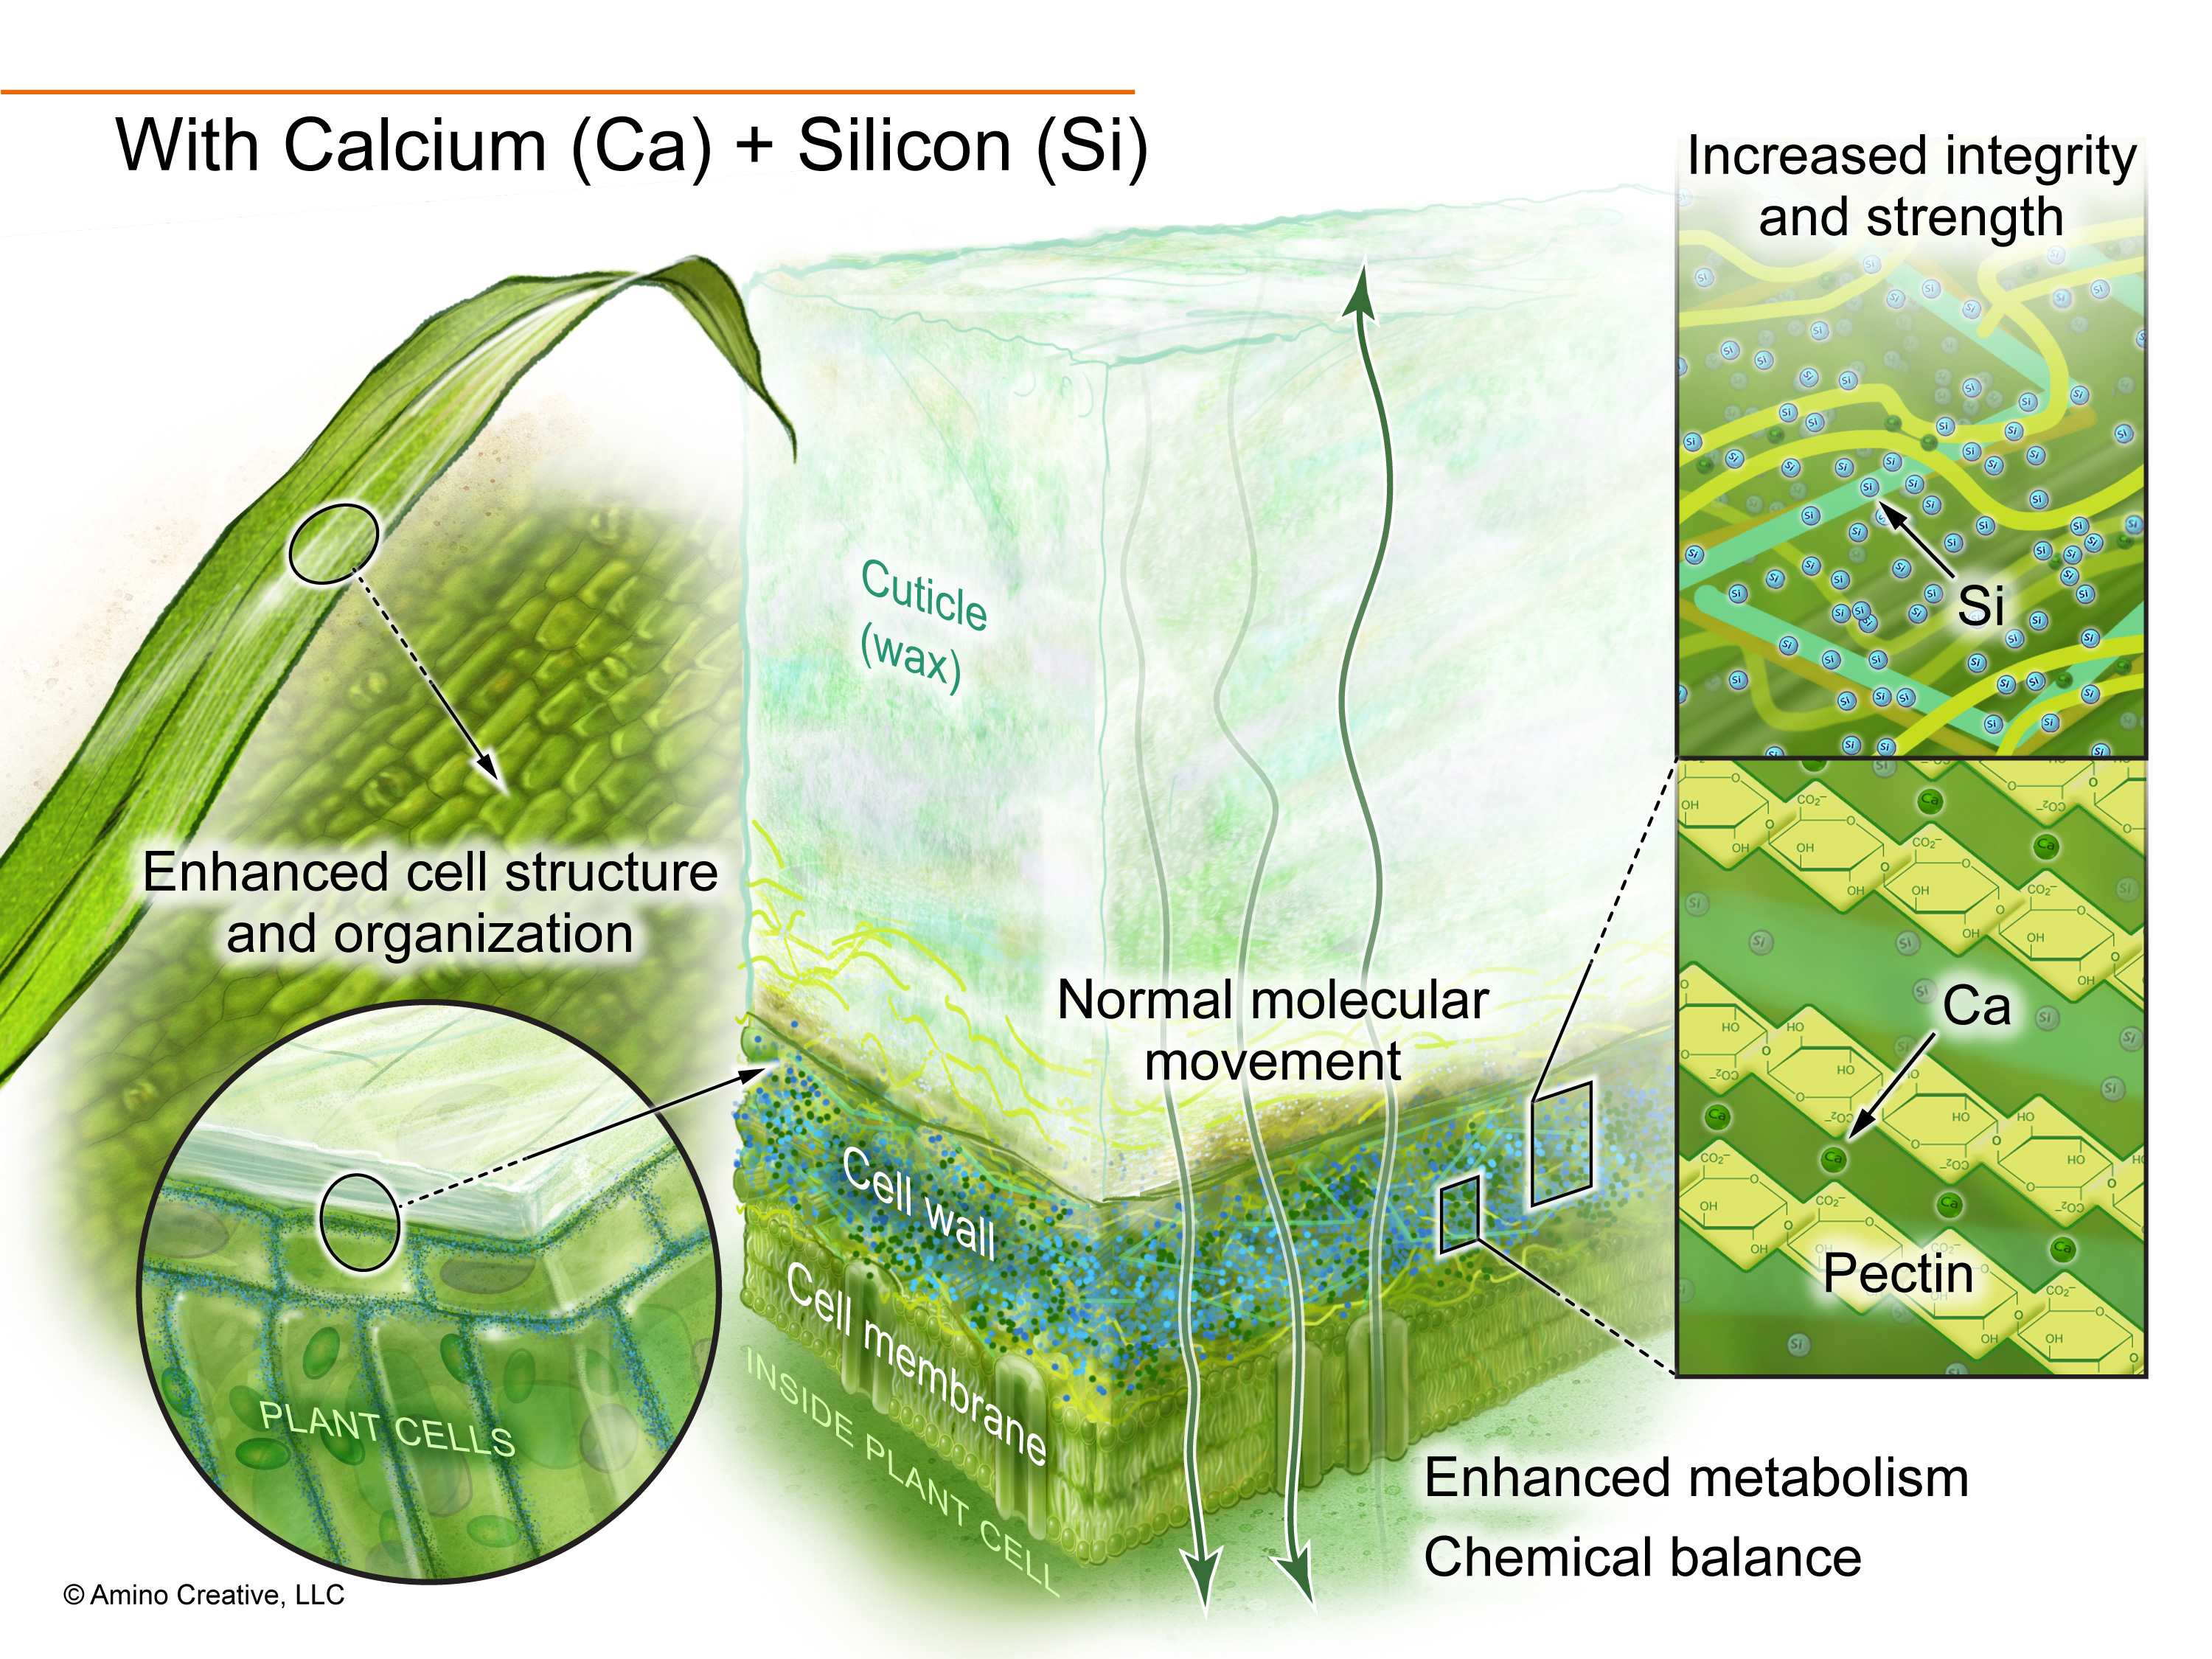 Illustration showing effects of added calcium and silicon.